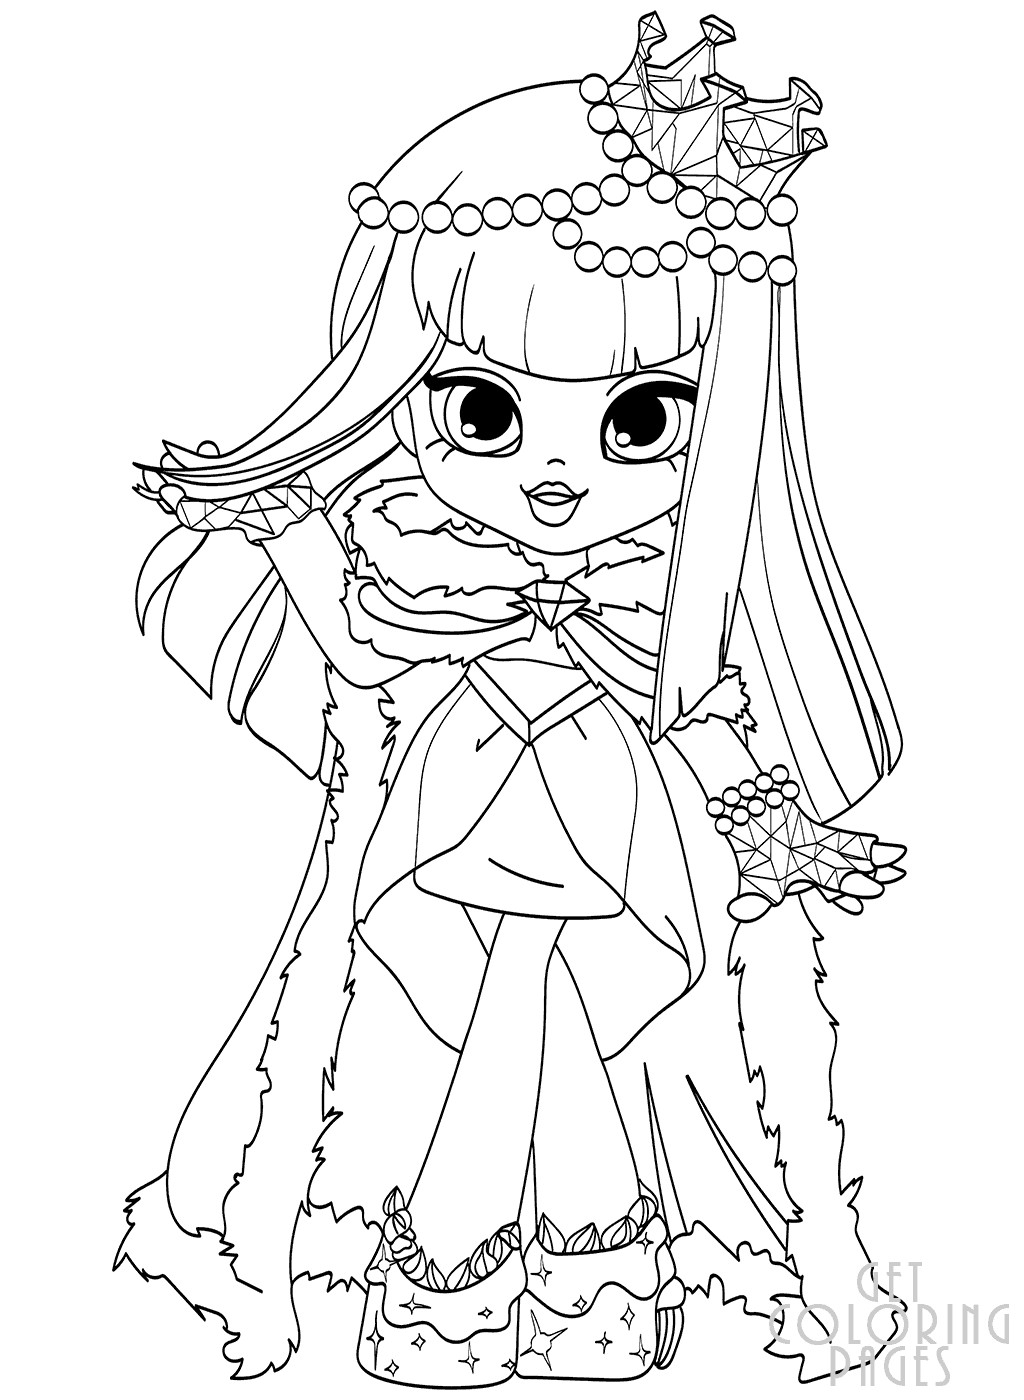 Coloring Sheets For Girls Shopkins  Cute Coloring Pages For Girls 7 To 8 Shopkins To